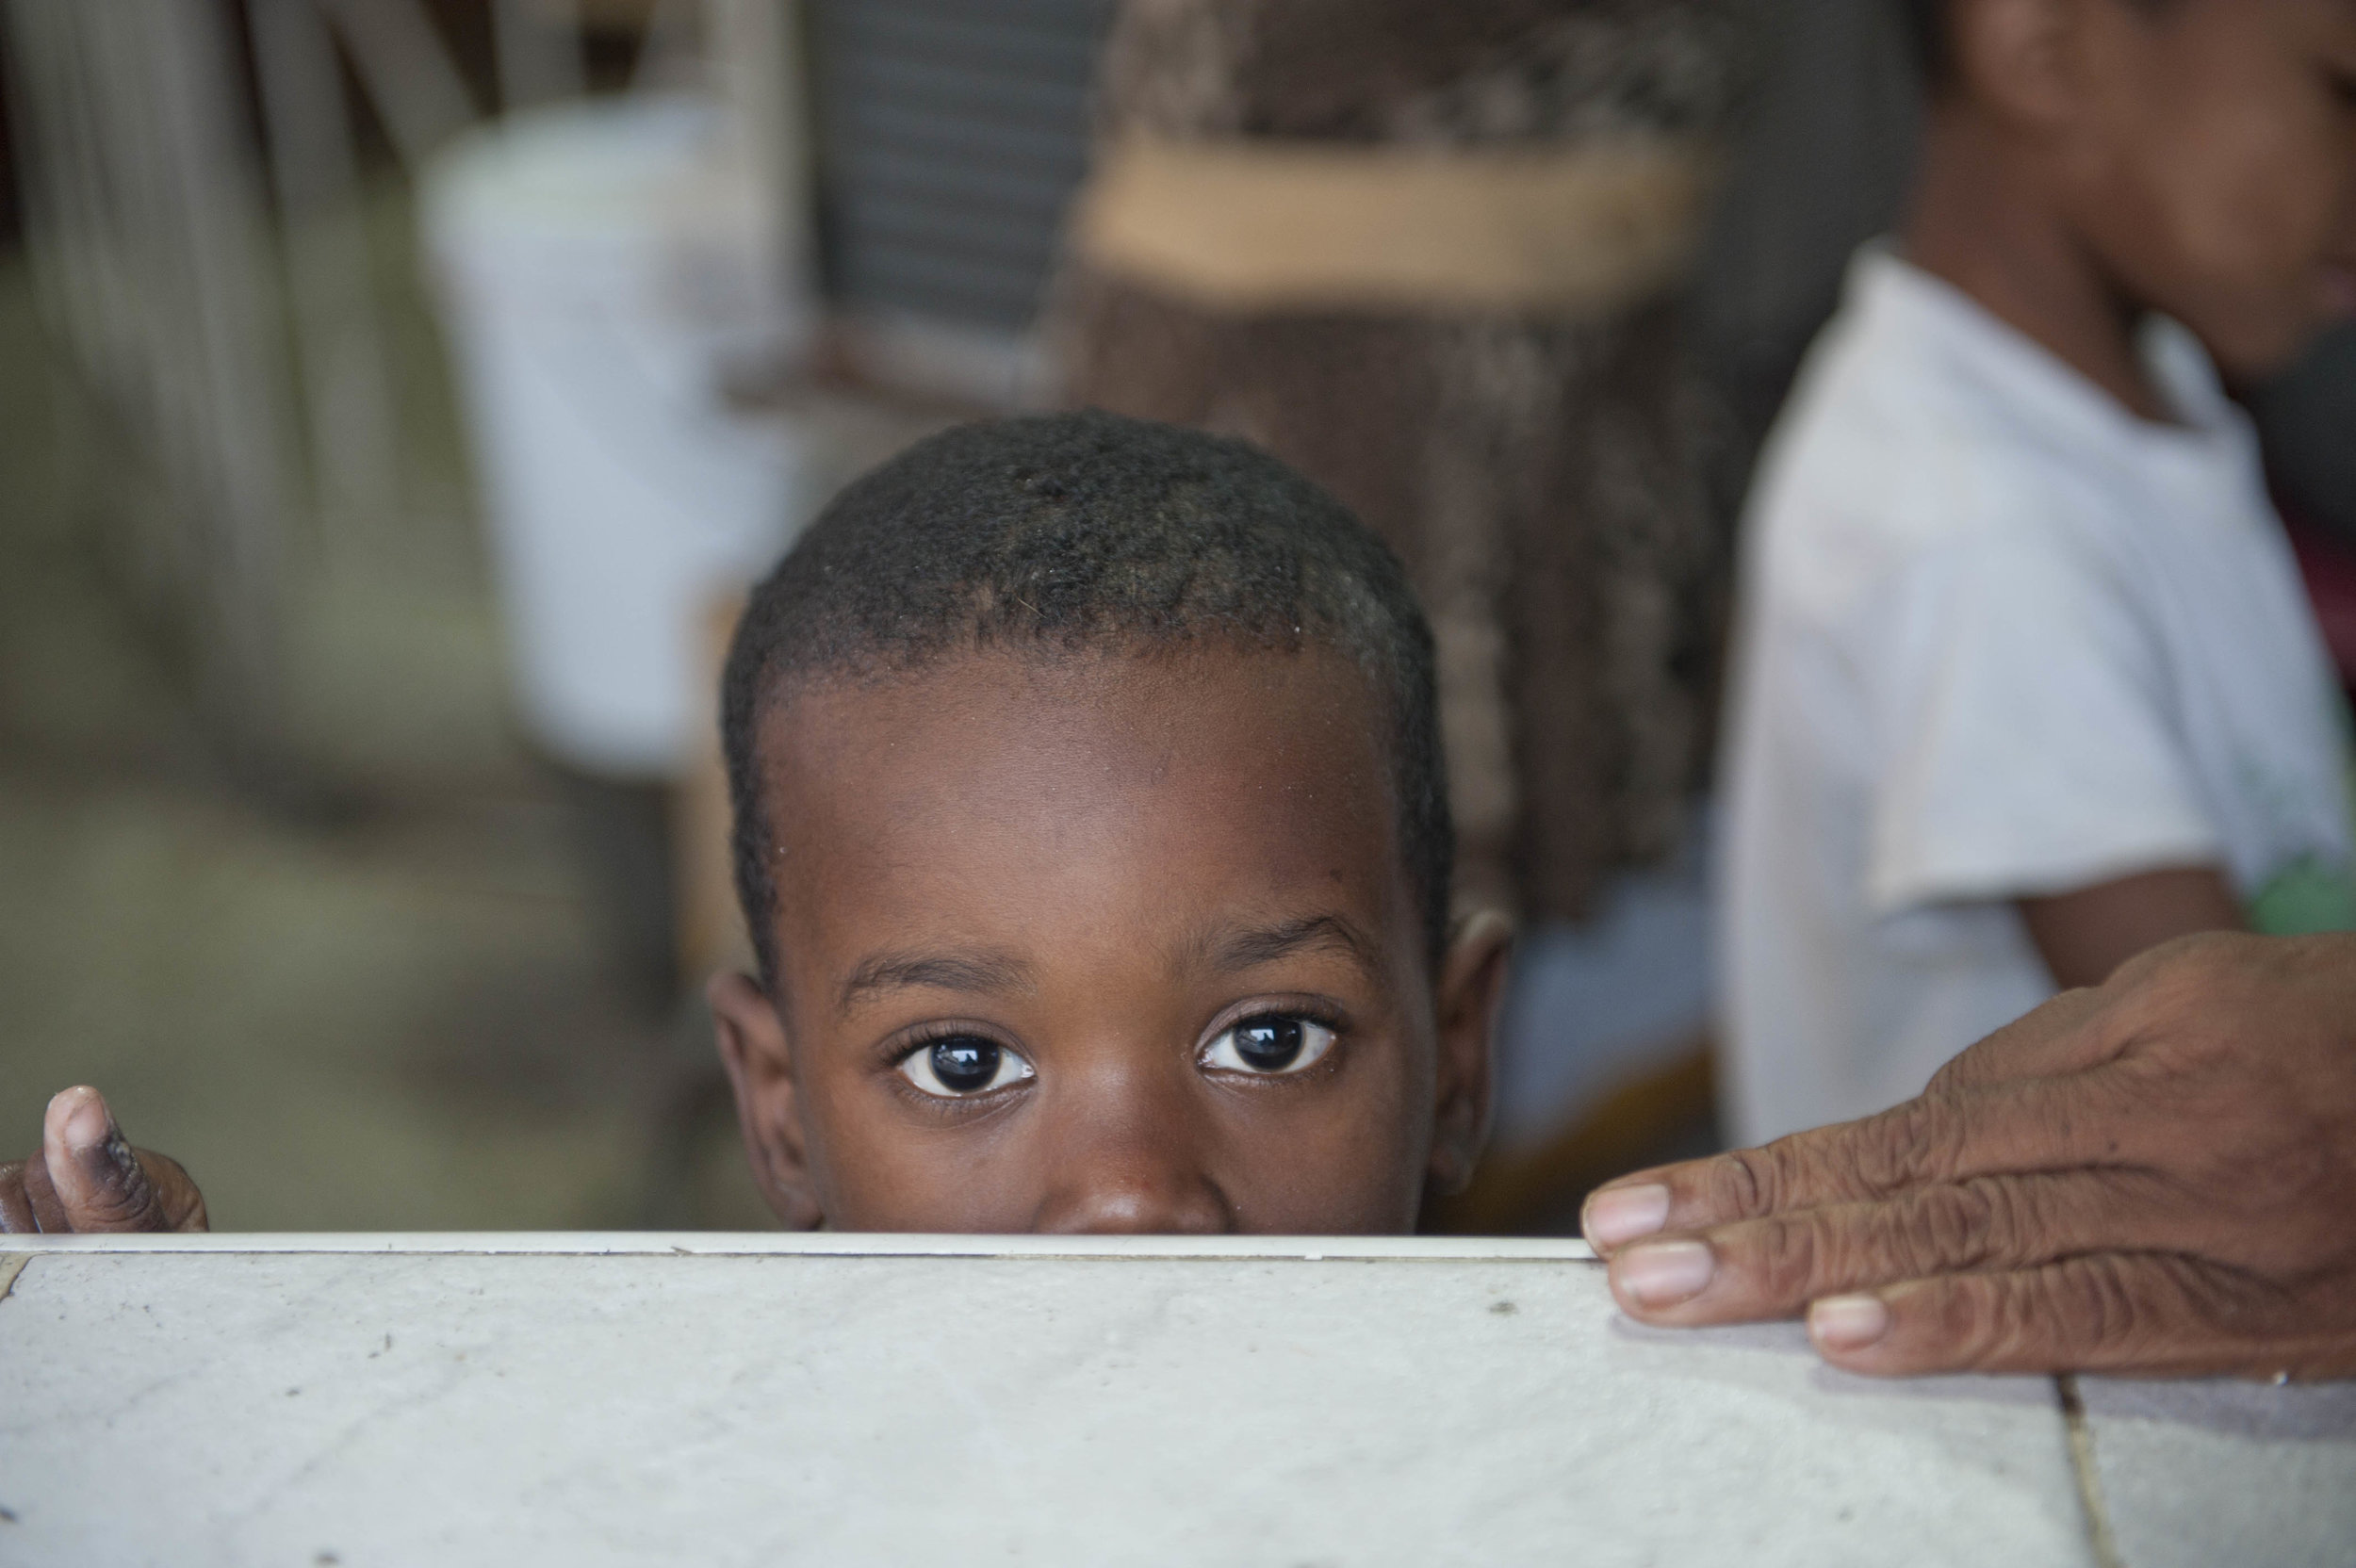 Child at bodega in Havana, Cuba